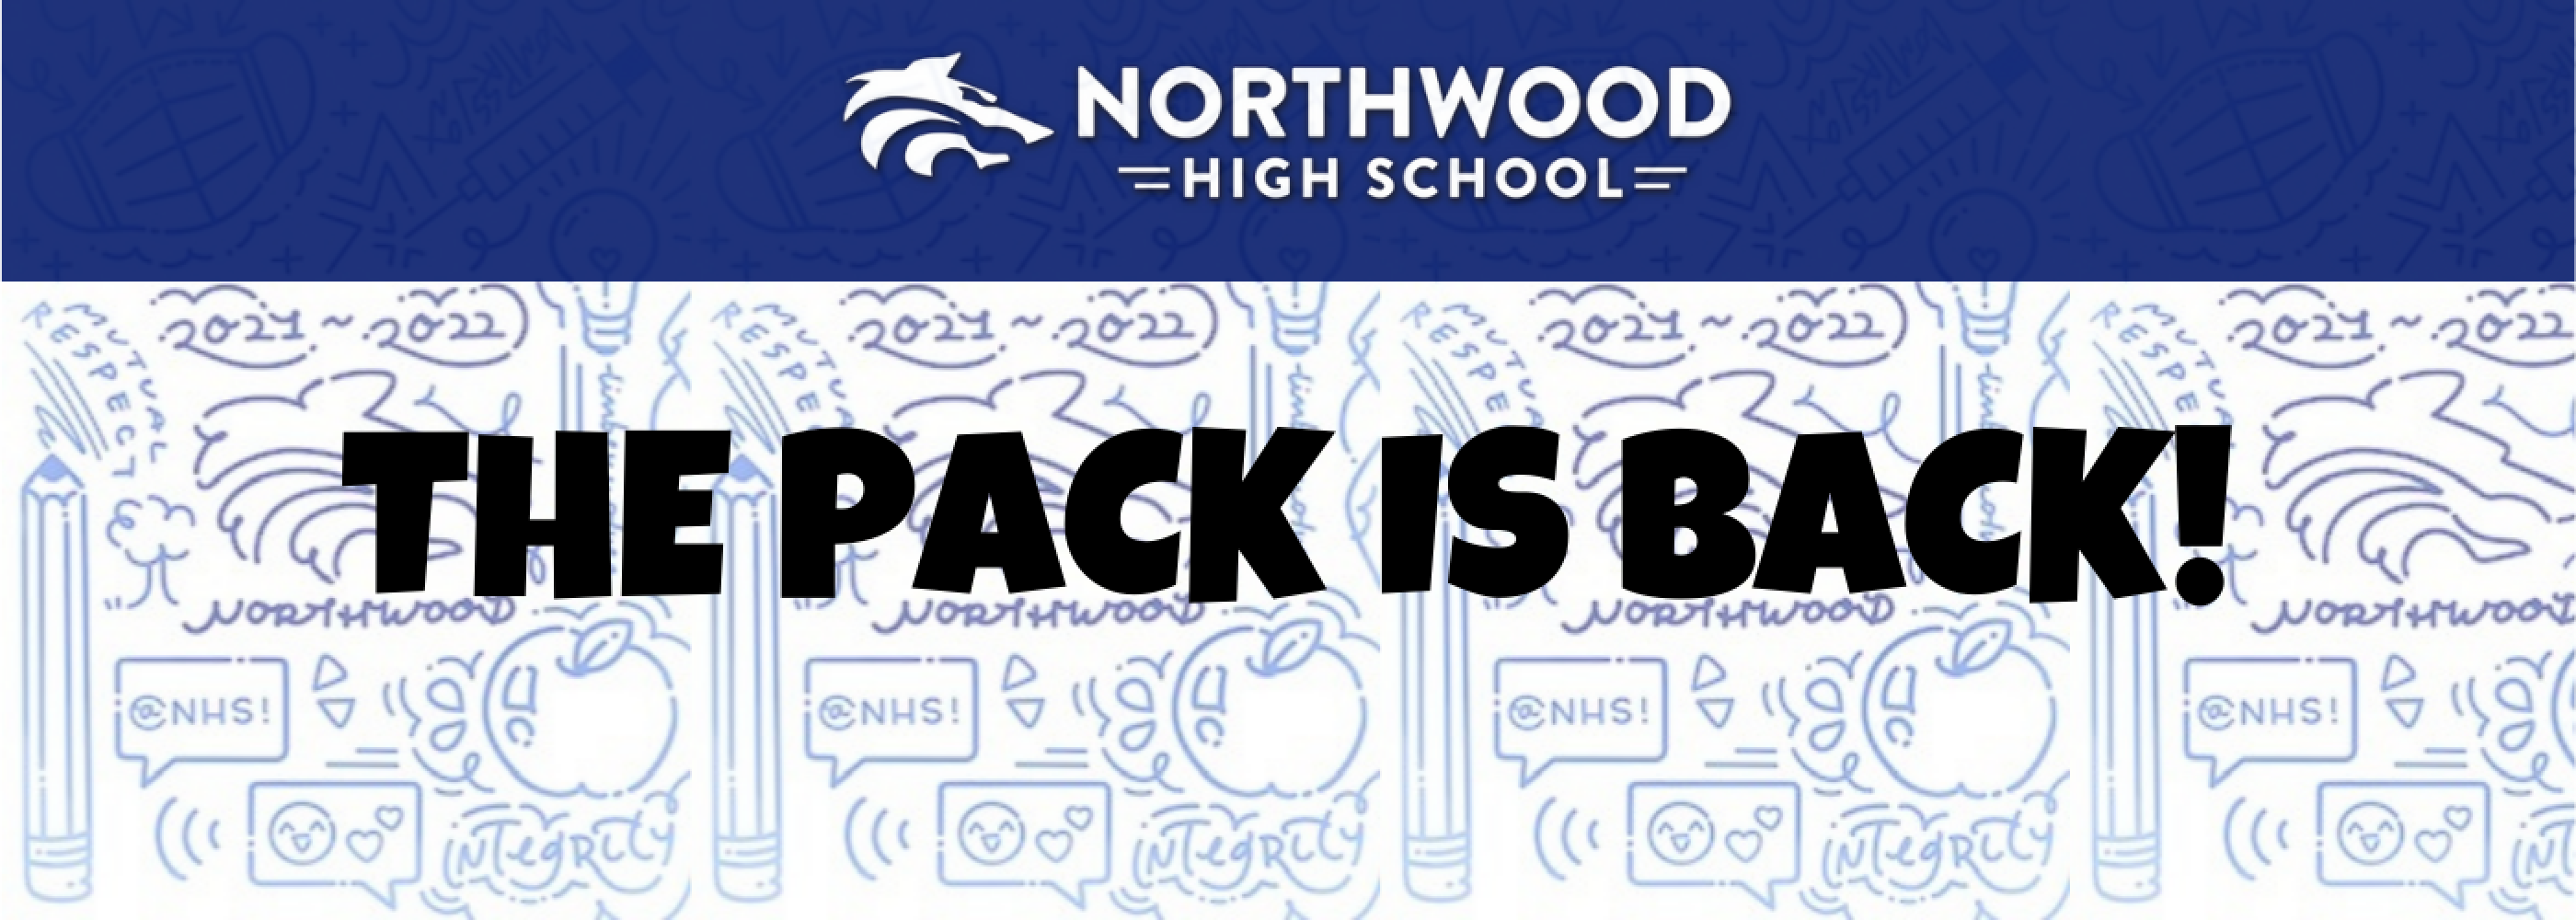 The Pack is Back!